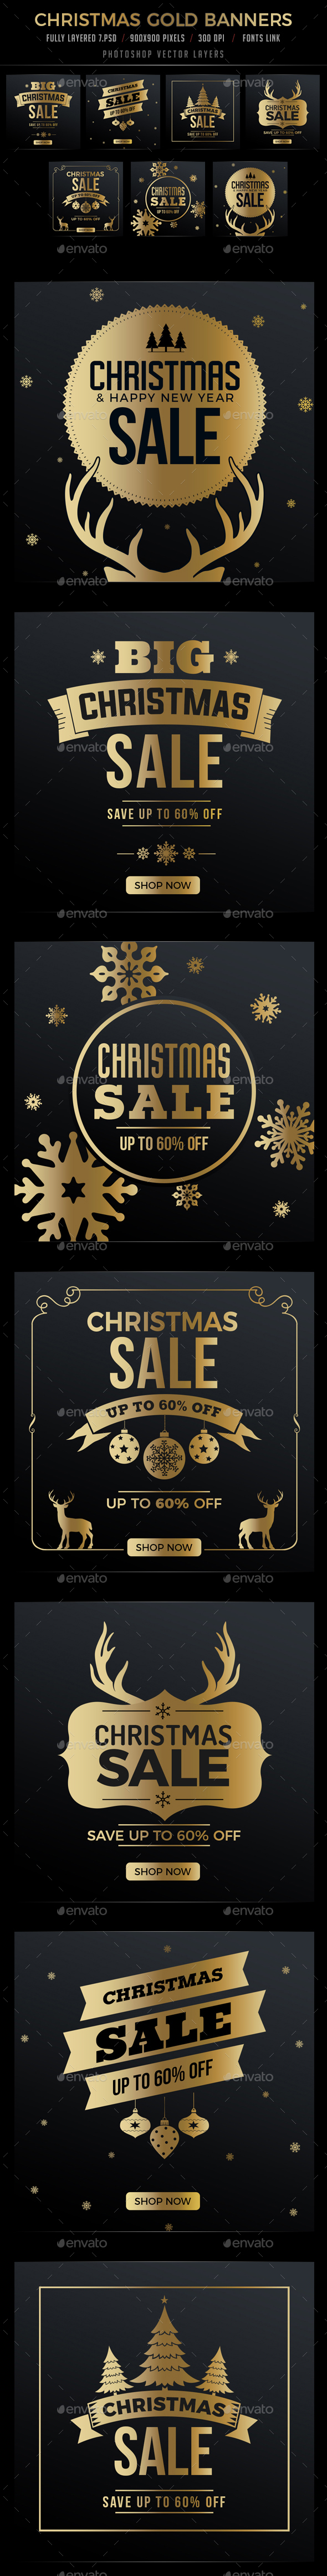 7 Christmas Gold Banners - Banners & Ads Web Elements